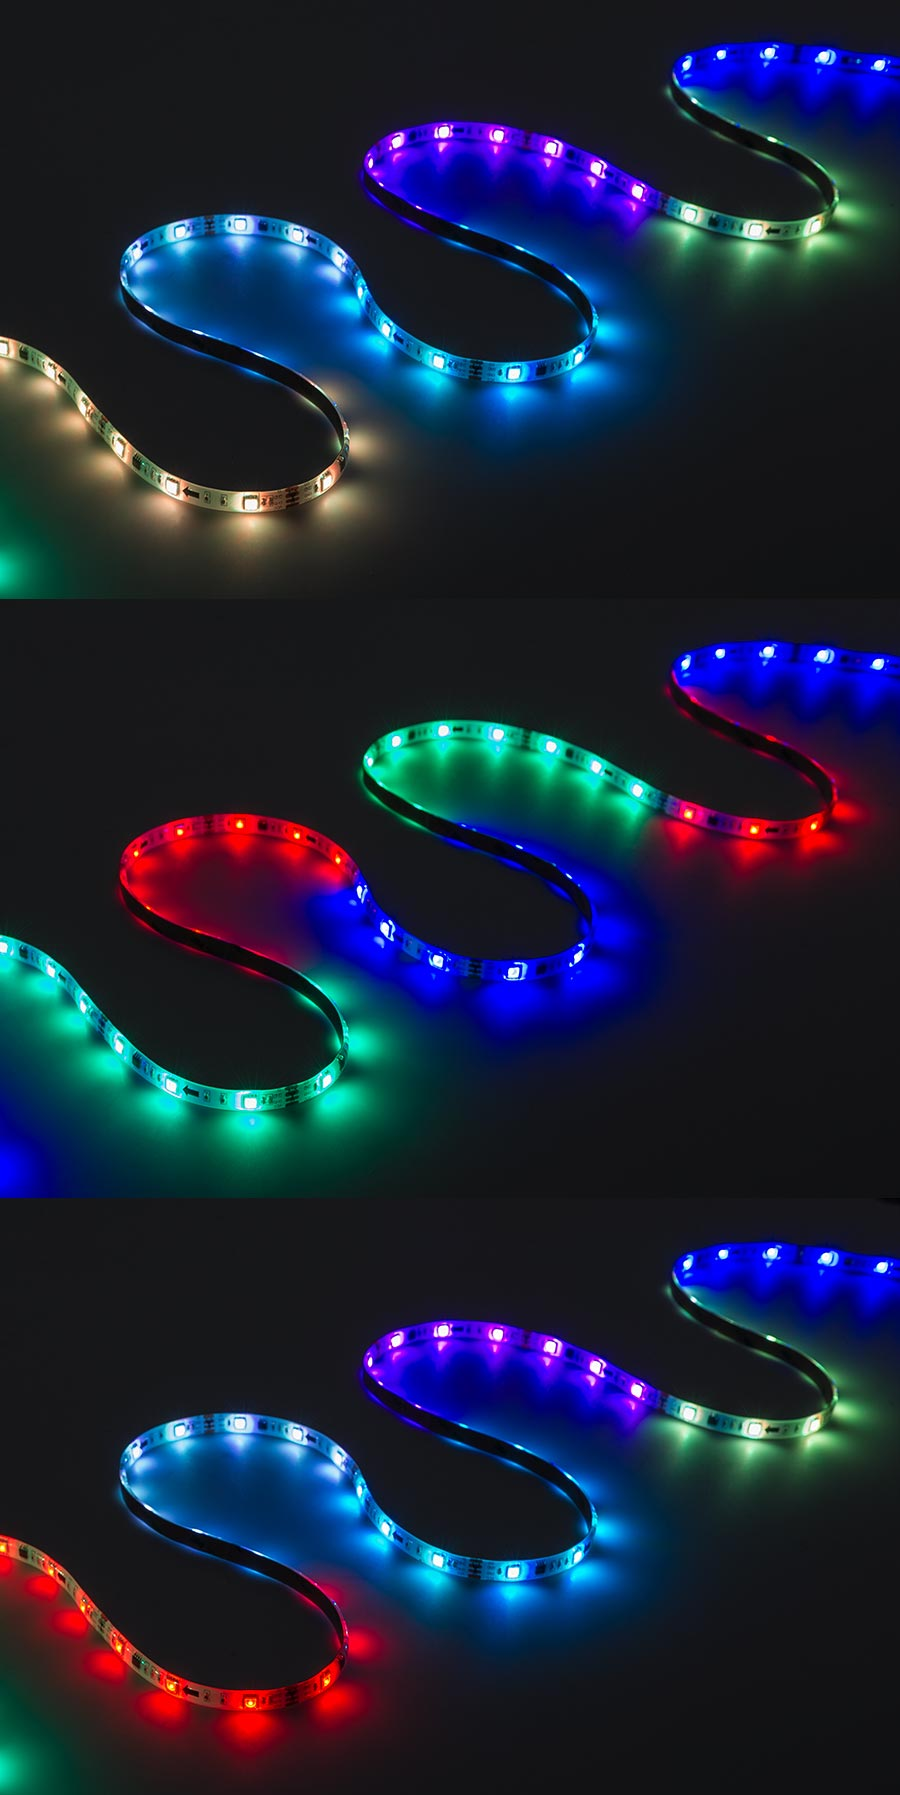 Color Chasing RGB LED Light Strip Kit   LED Tape Light With 9 SMDs/ft.   3  Chip RGB SMD LED 5060: On Showing Multiple Color Dreamcolor Modes.